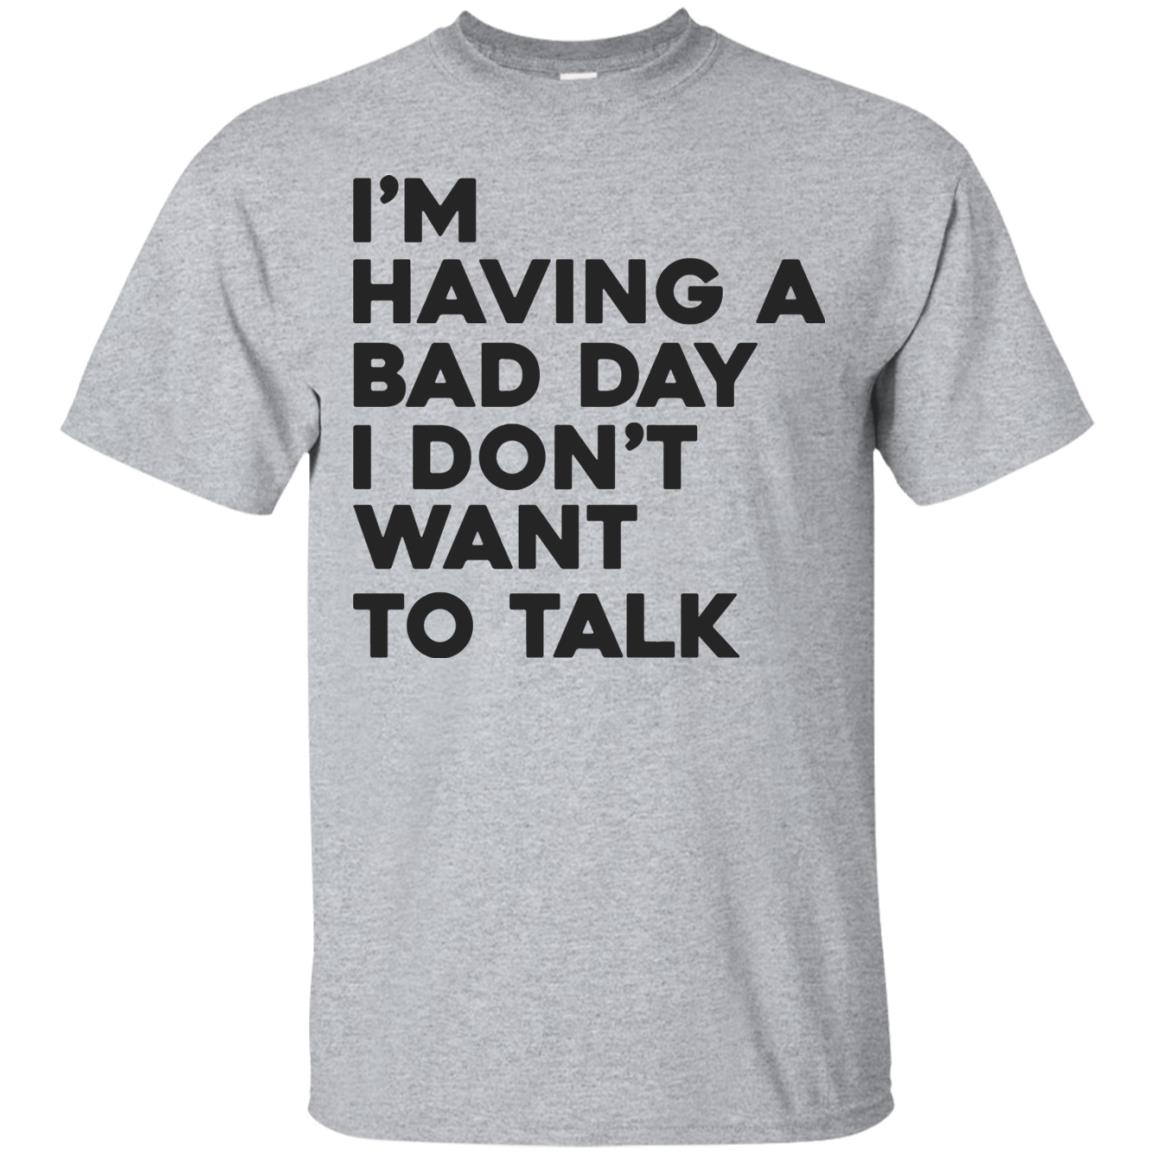 image 235px I'm having a bad day I don't want to talk t shirt, hoodies, tank